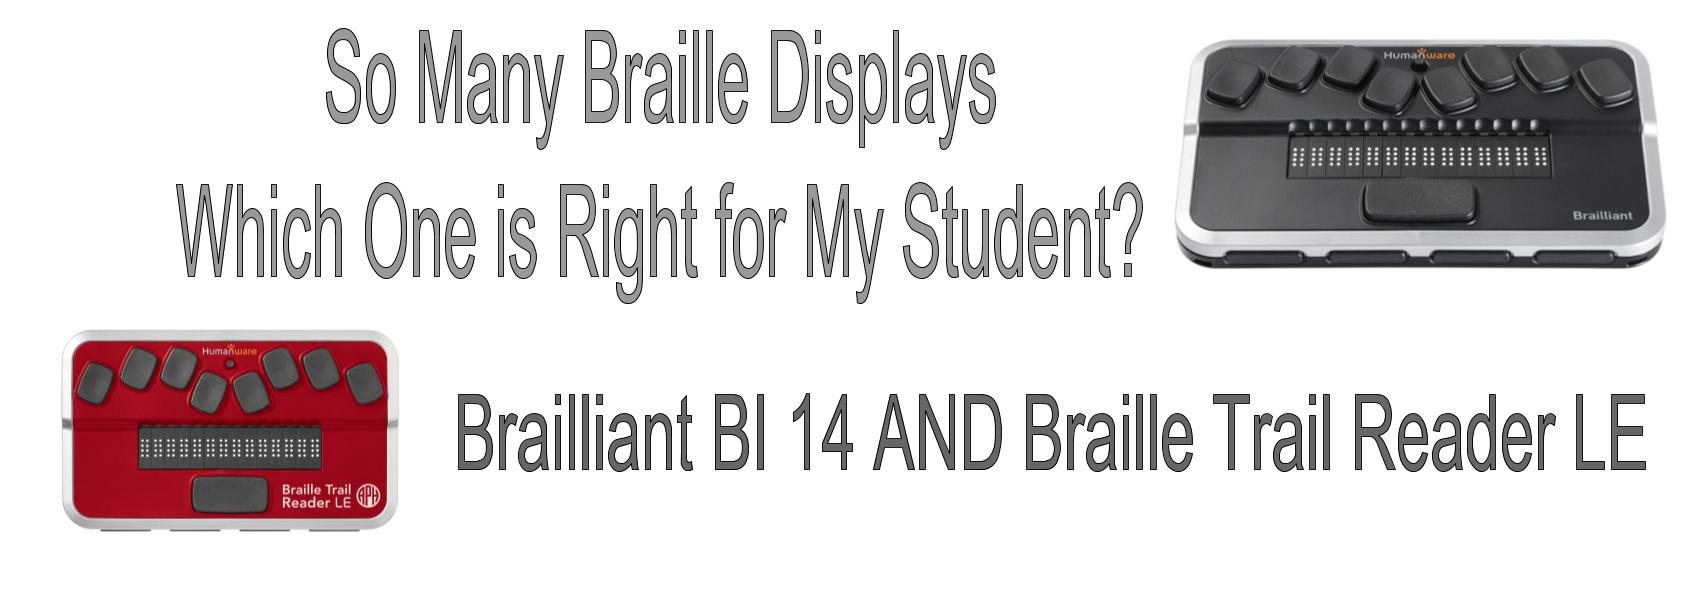 So Many Braille Displays, Which One is Right for My Student